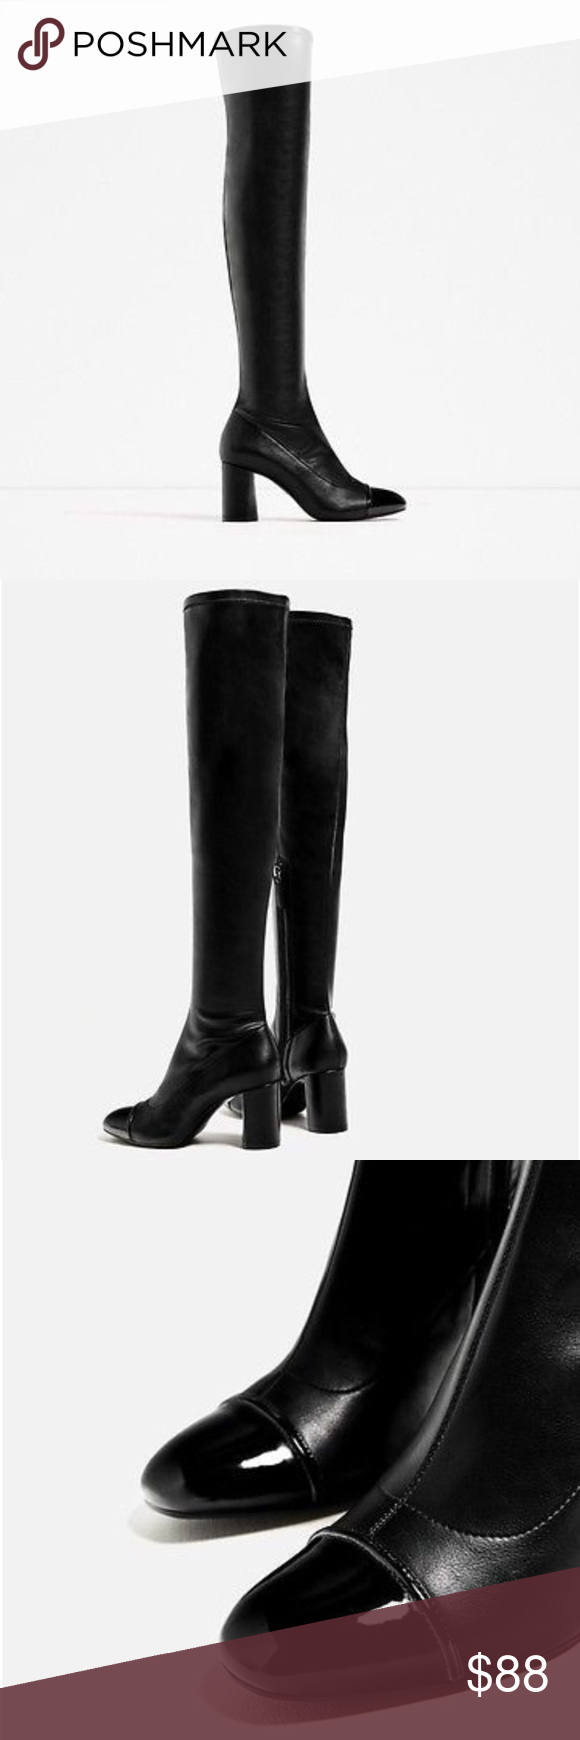 5fab3a8a109 Zara Black Thigh High Boots Amazing Zara black stretchy over the knee    thigh high boots